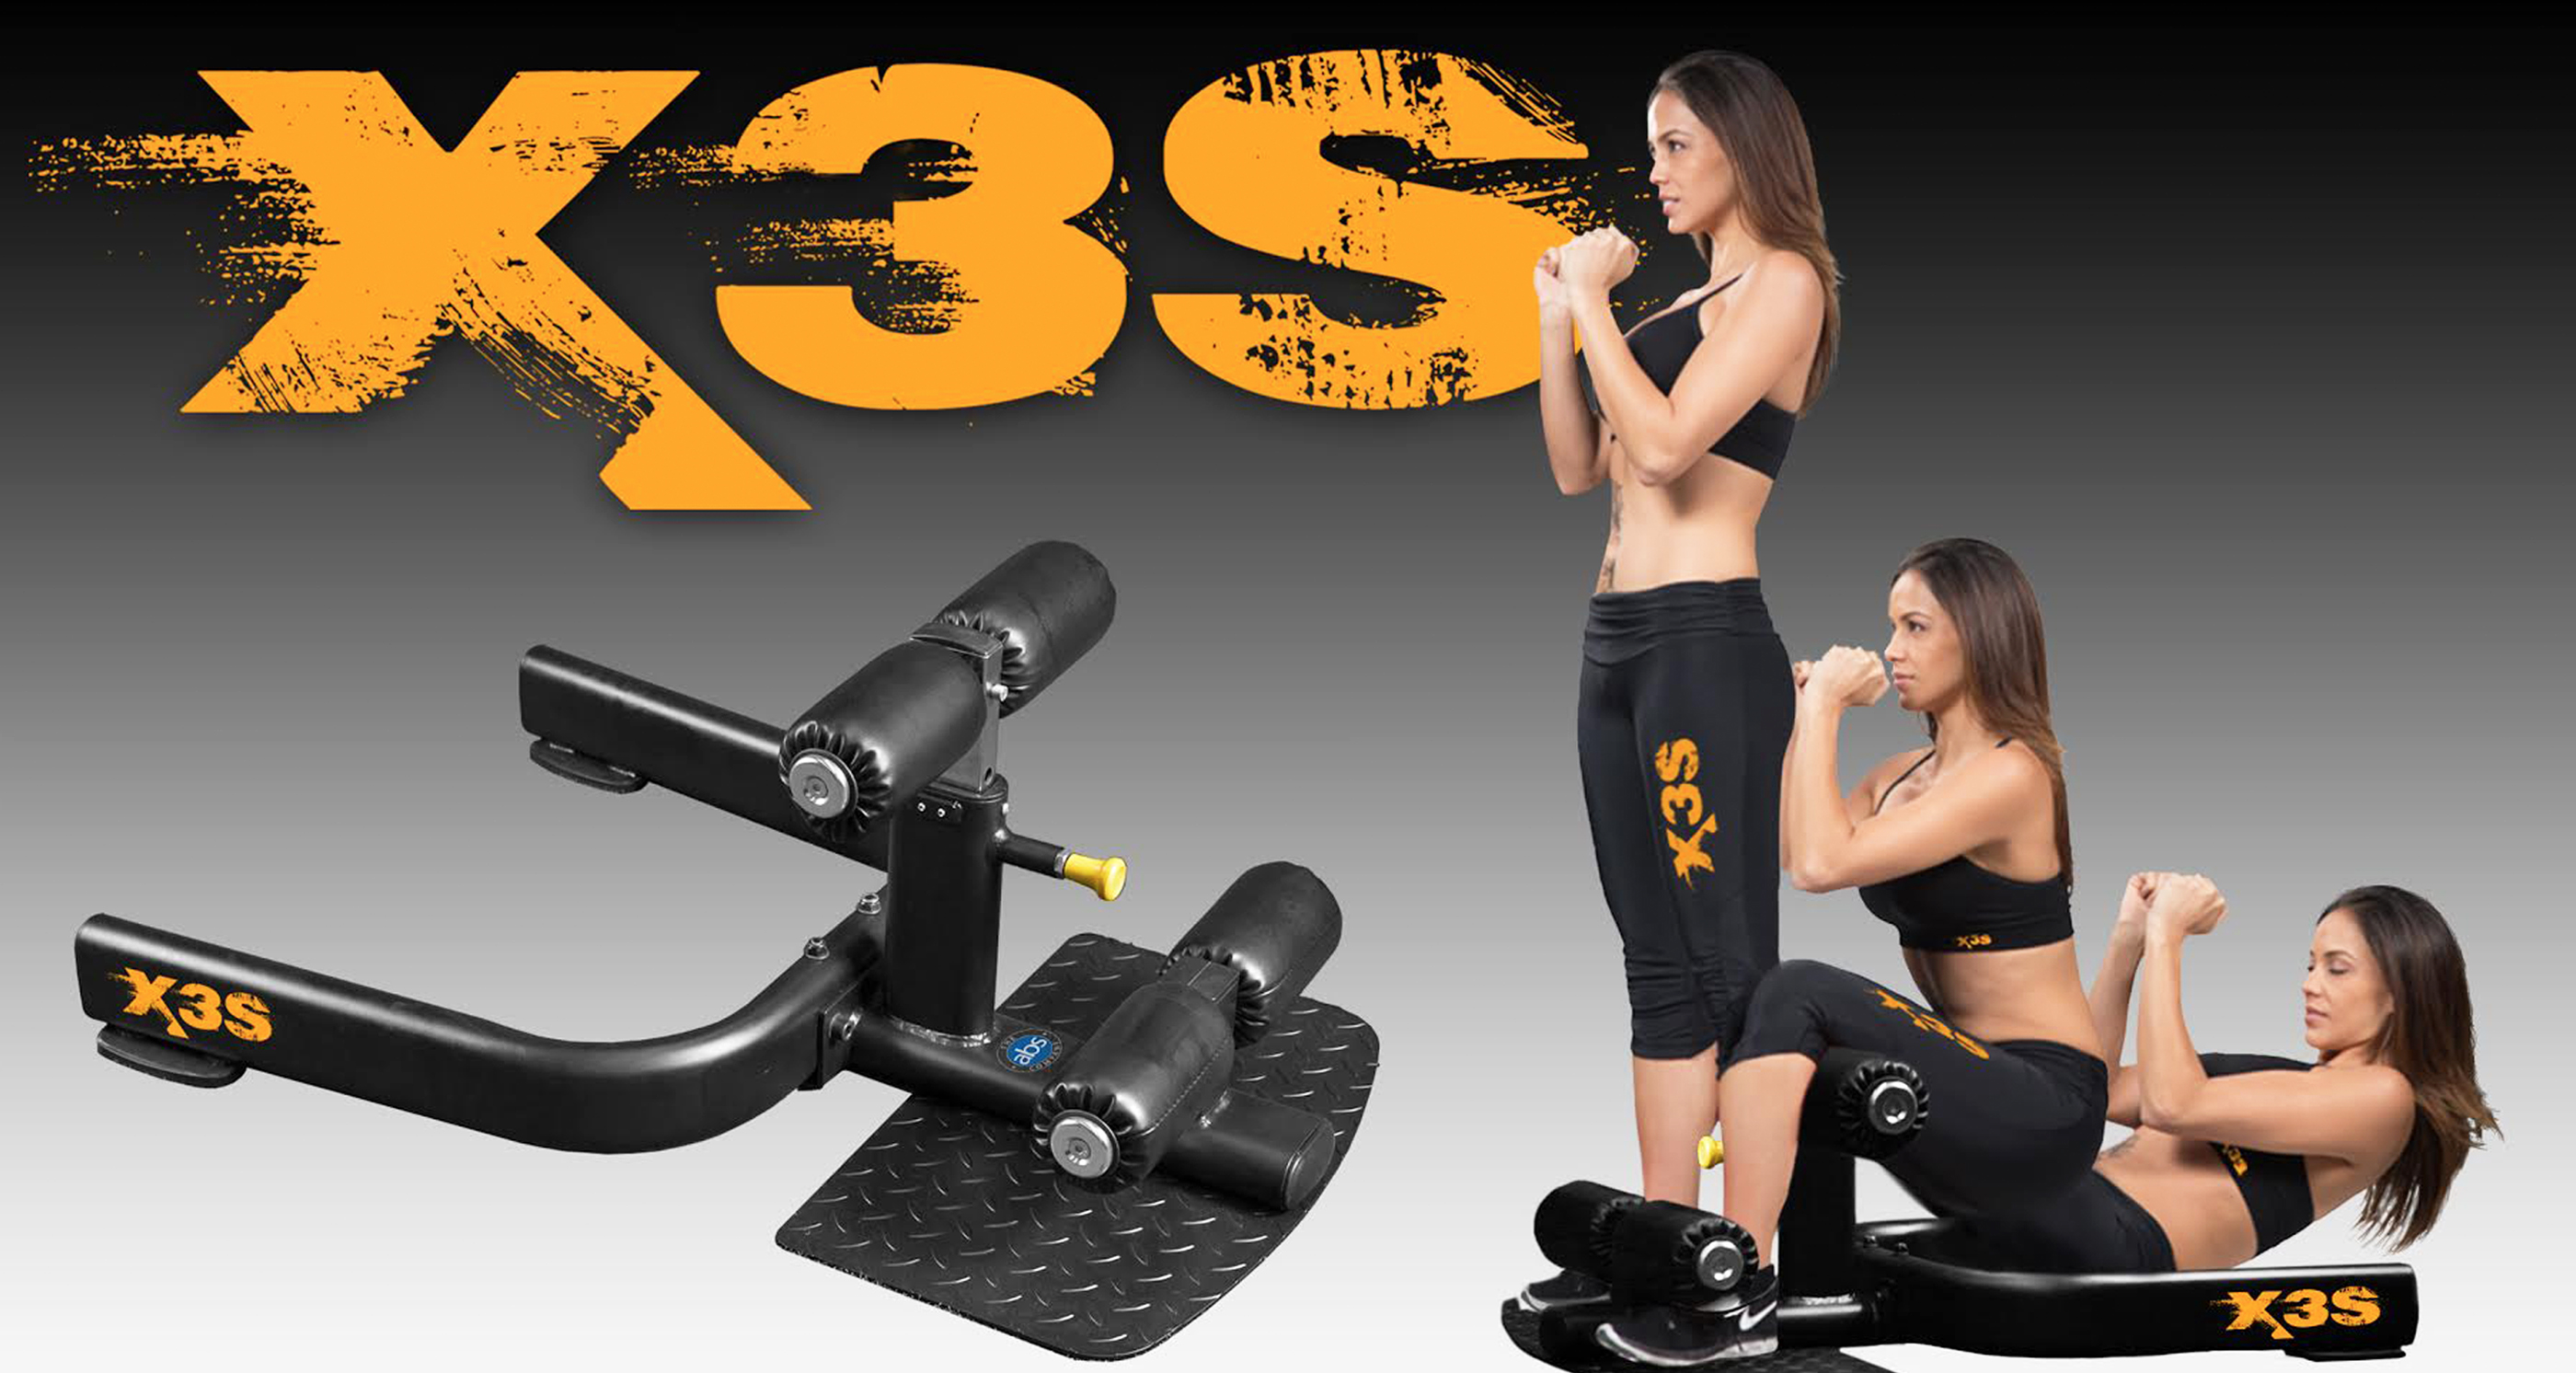 x3s-bench-the-abs-company1